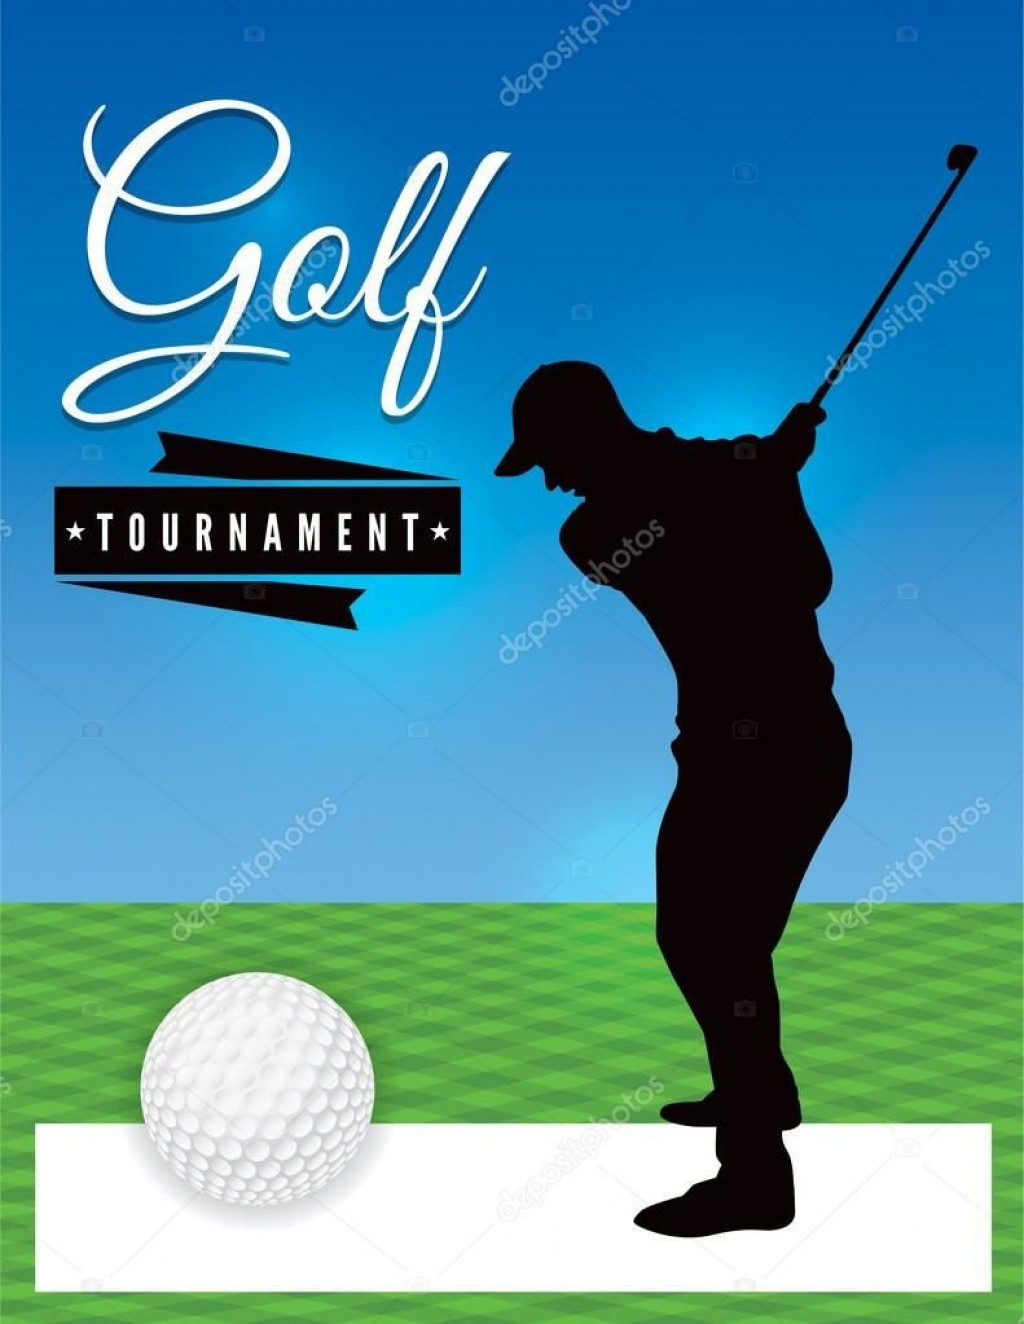 005 Stunning Free Charity Golf Tournament Flyer Template Design Large